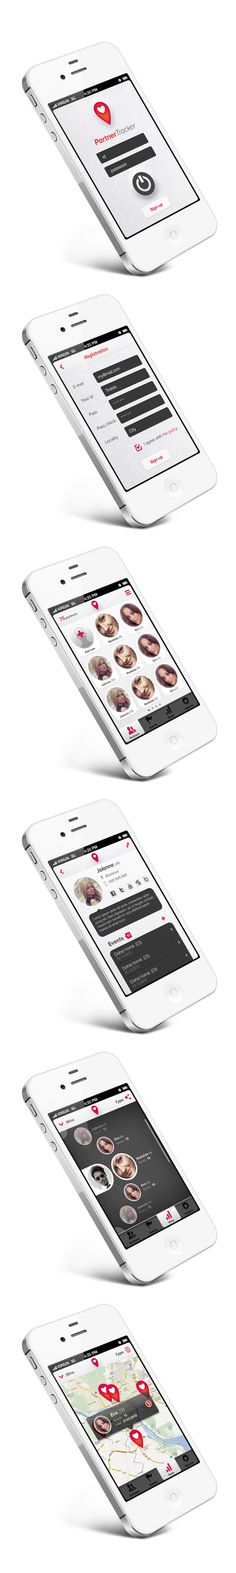 Partner Tracker App by Martin Schurdak, via Behance *** Smartphone application for sex-partner tracking :)